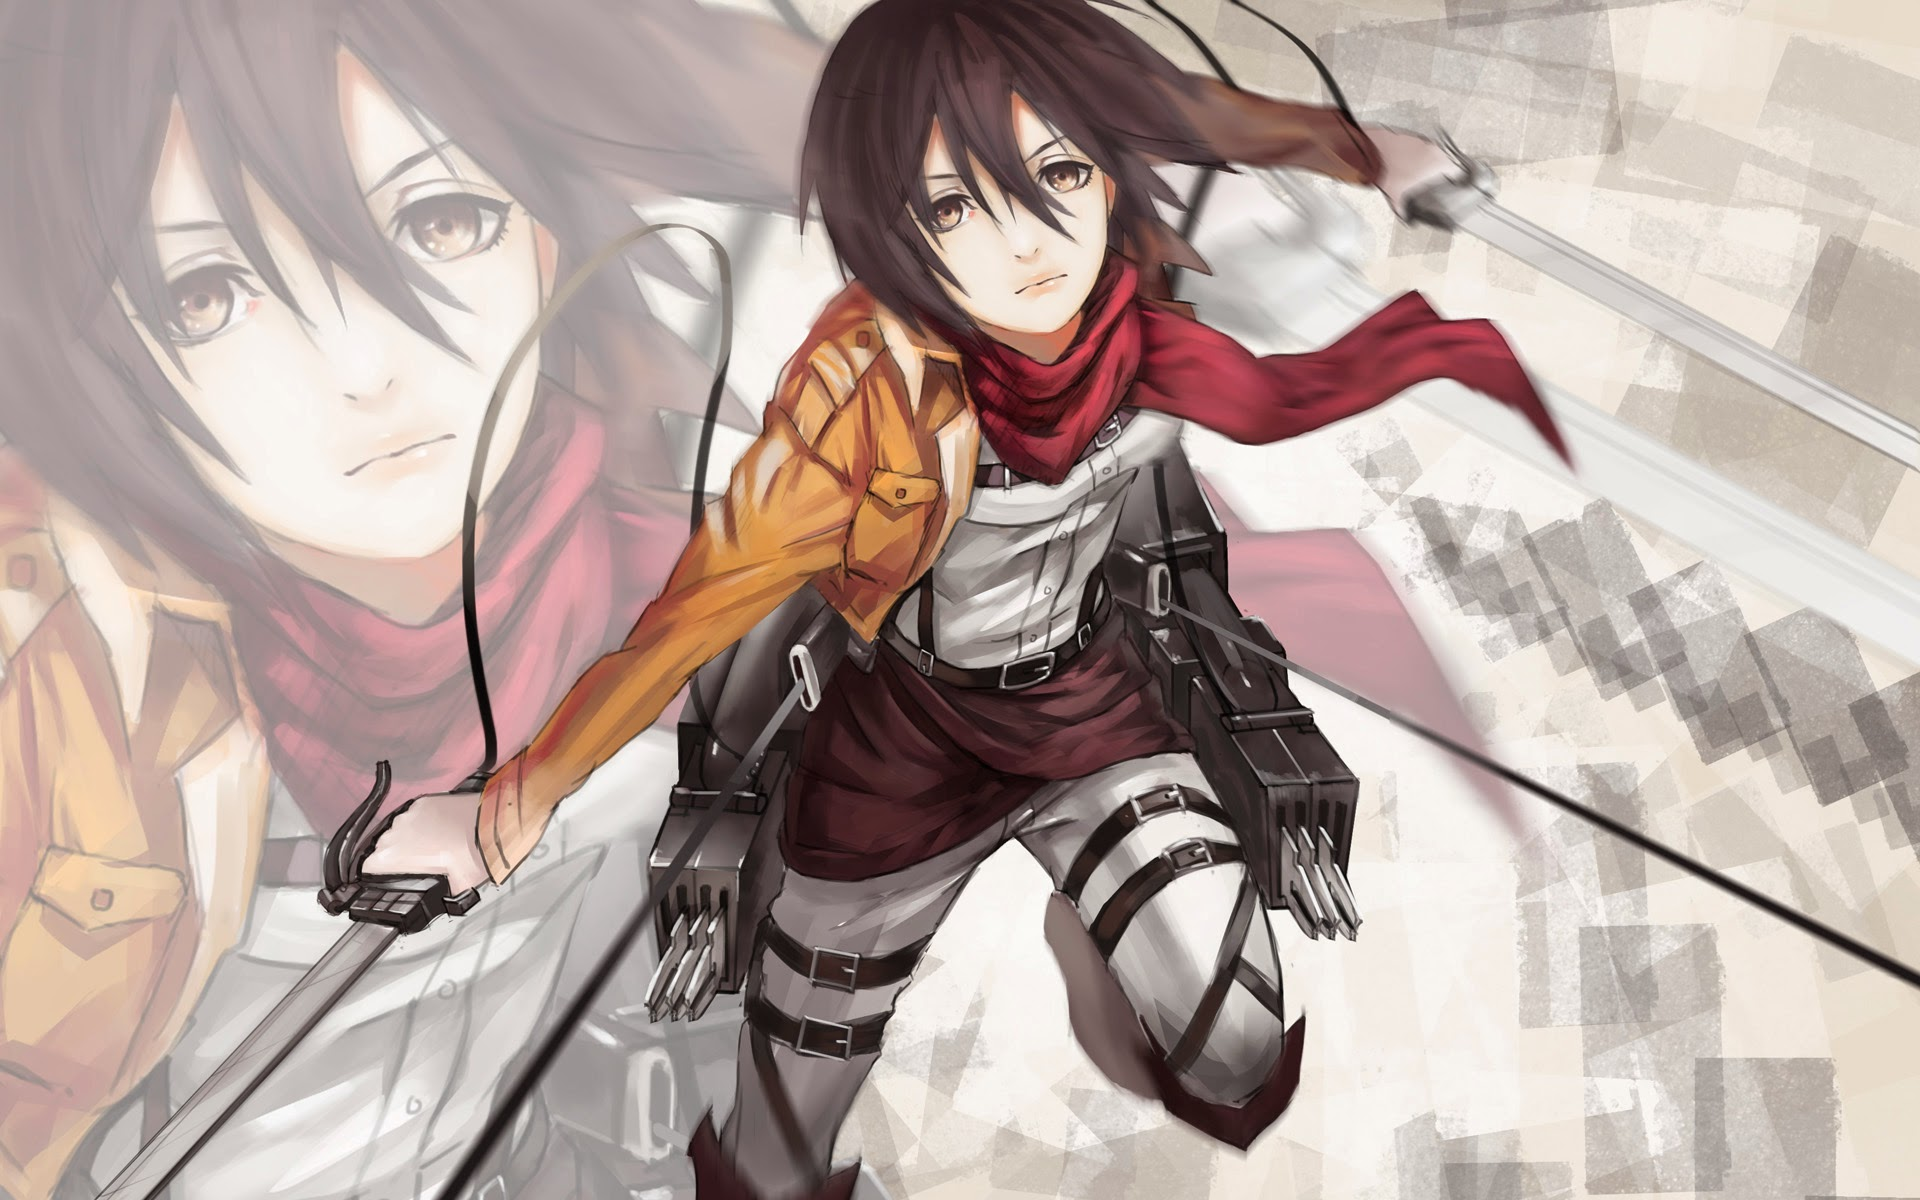 Free Download Attack On Titan Mikasa Anime 9b Wallpaper Hd